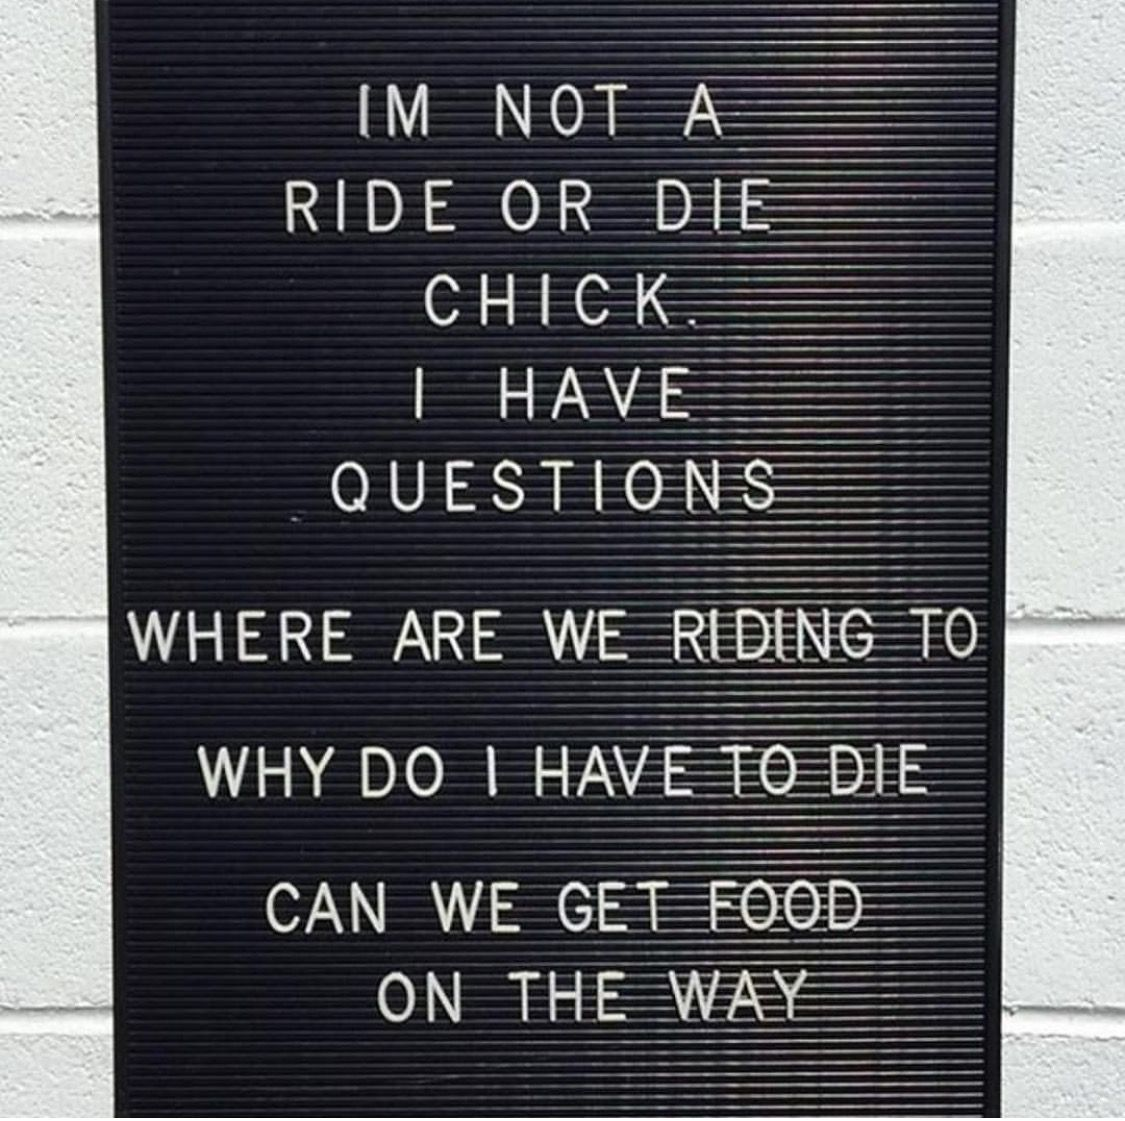 Ride or die | Cycling quotes, Funny quotes, Quotes to live by